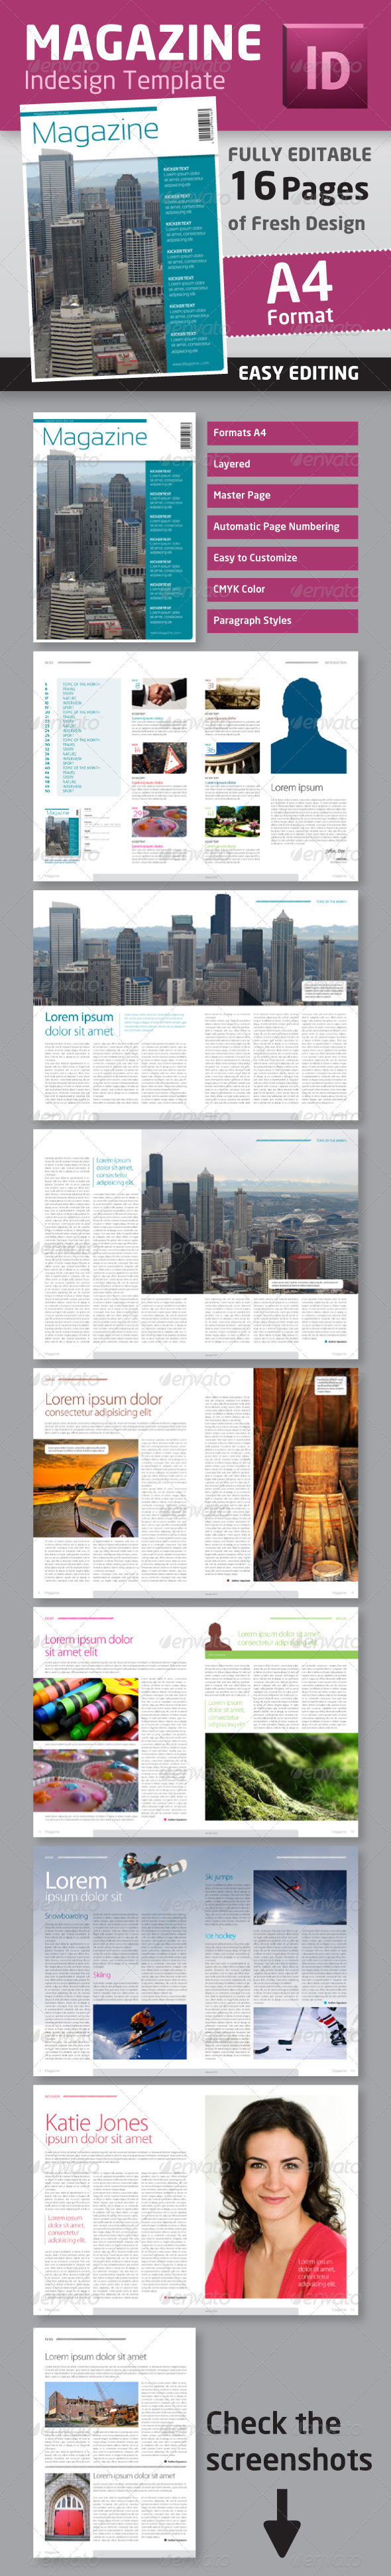 Indesign Magazine Template in A4 Format - Magazines Print Templates